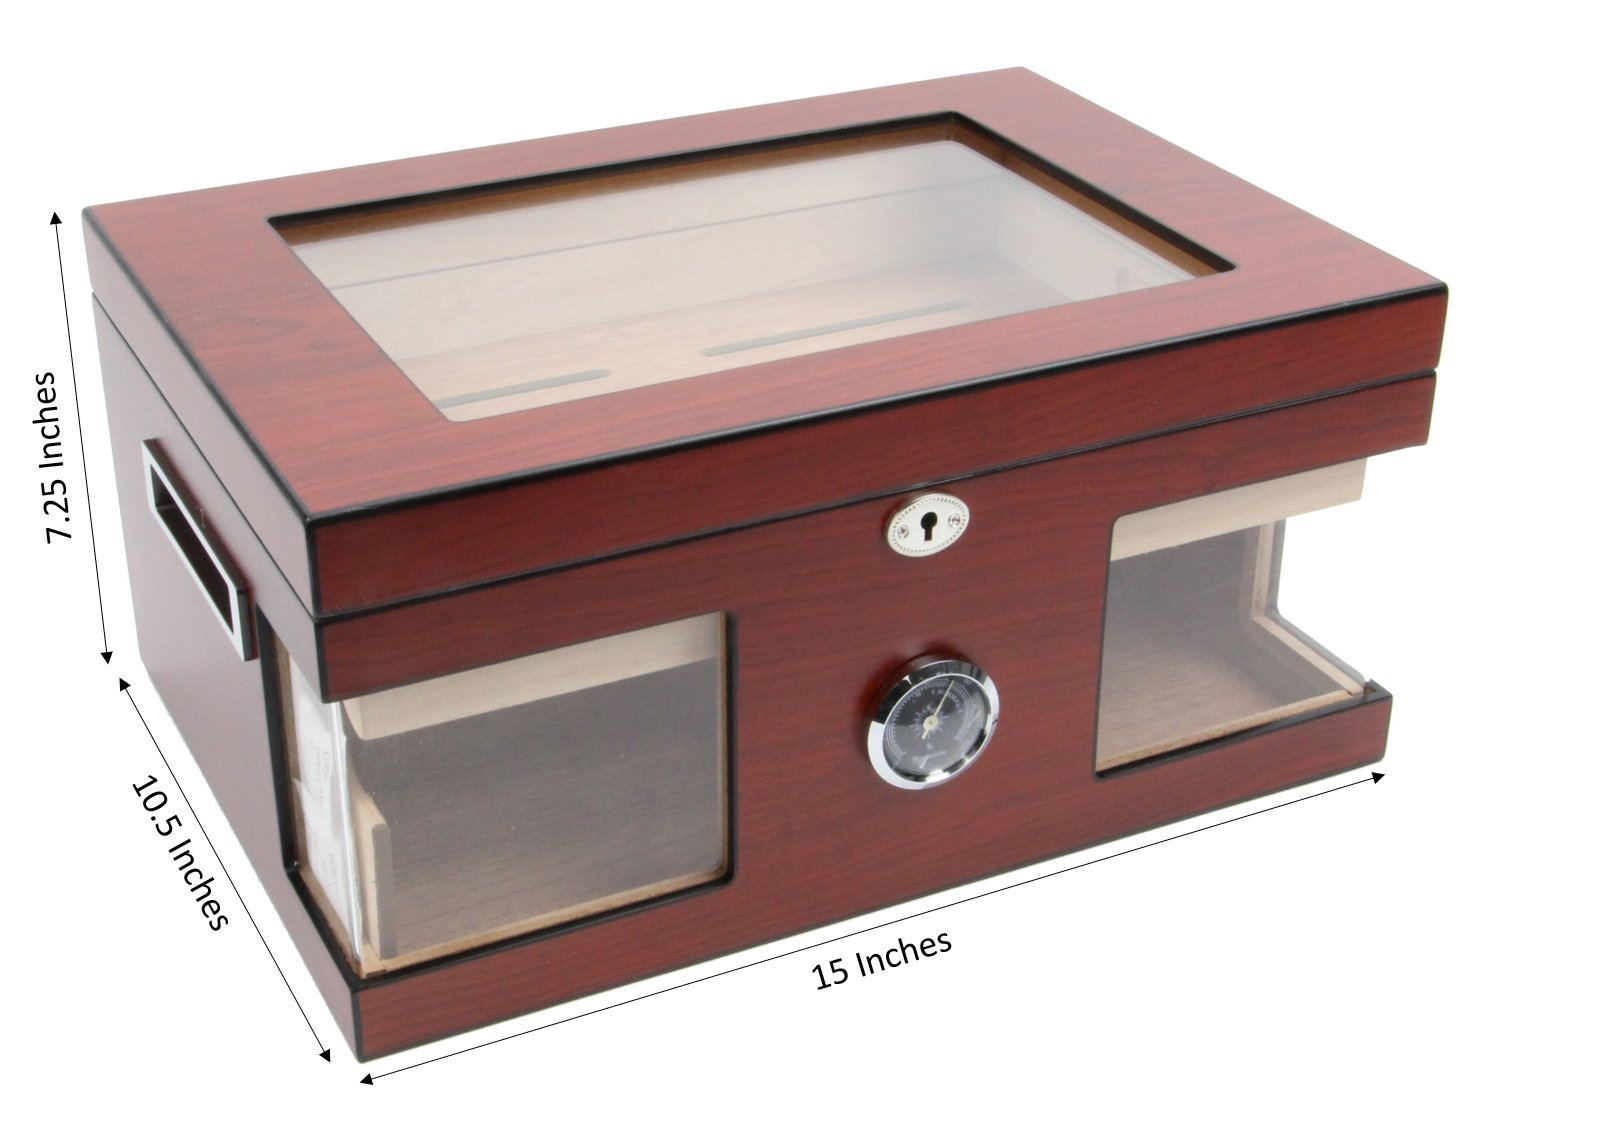 Decorebay SAVOY Executive Boveda Humidor by decore Bay (Image #7)